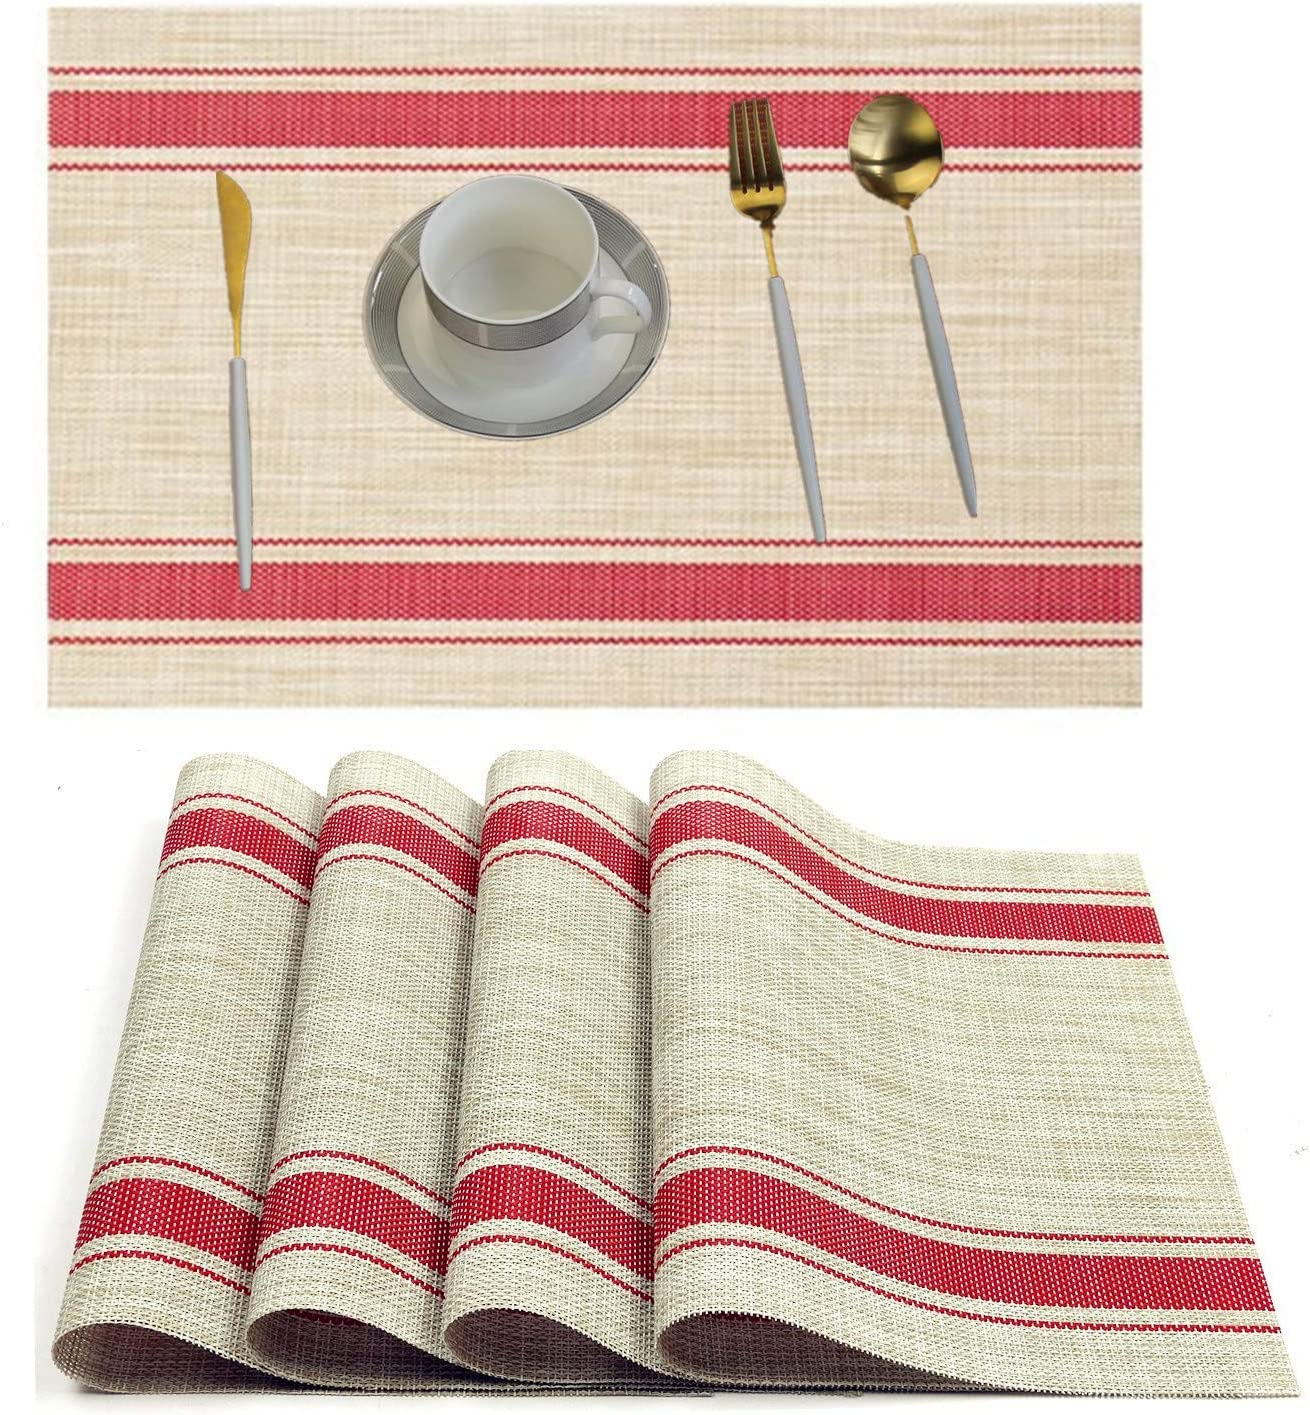 WANGCHAO Placemats Table Mats,Placemat Set of 4 Non-Slip Washable Place Mats,Heat Resistant Kitchen Tablemats for Dining Table (red-Stripe)